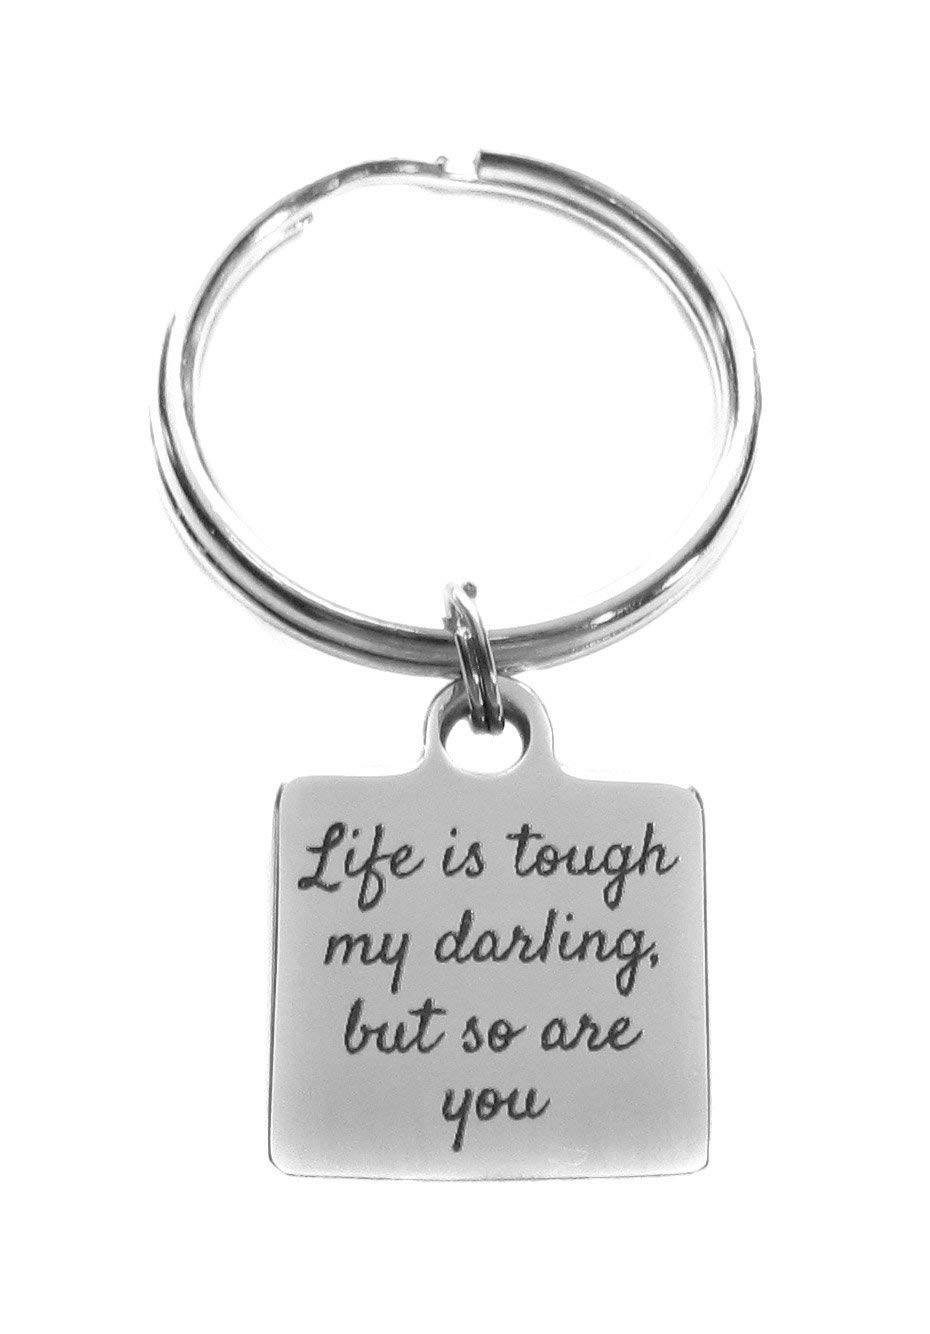 """Stainless Steel """"Life is Tough, My Darling, But So Are You"""" Square Charm Keychain, Key Chain Inspirational Gift"""